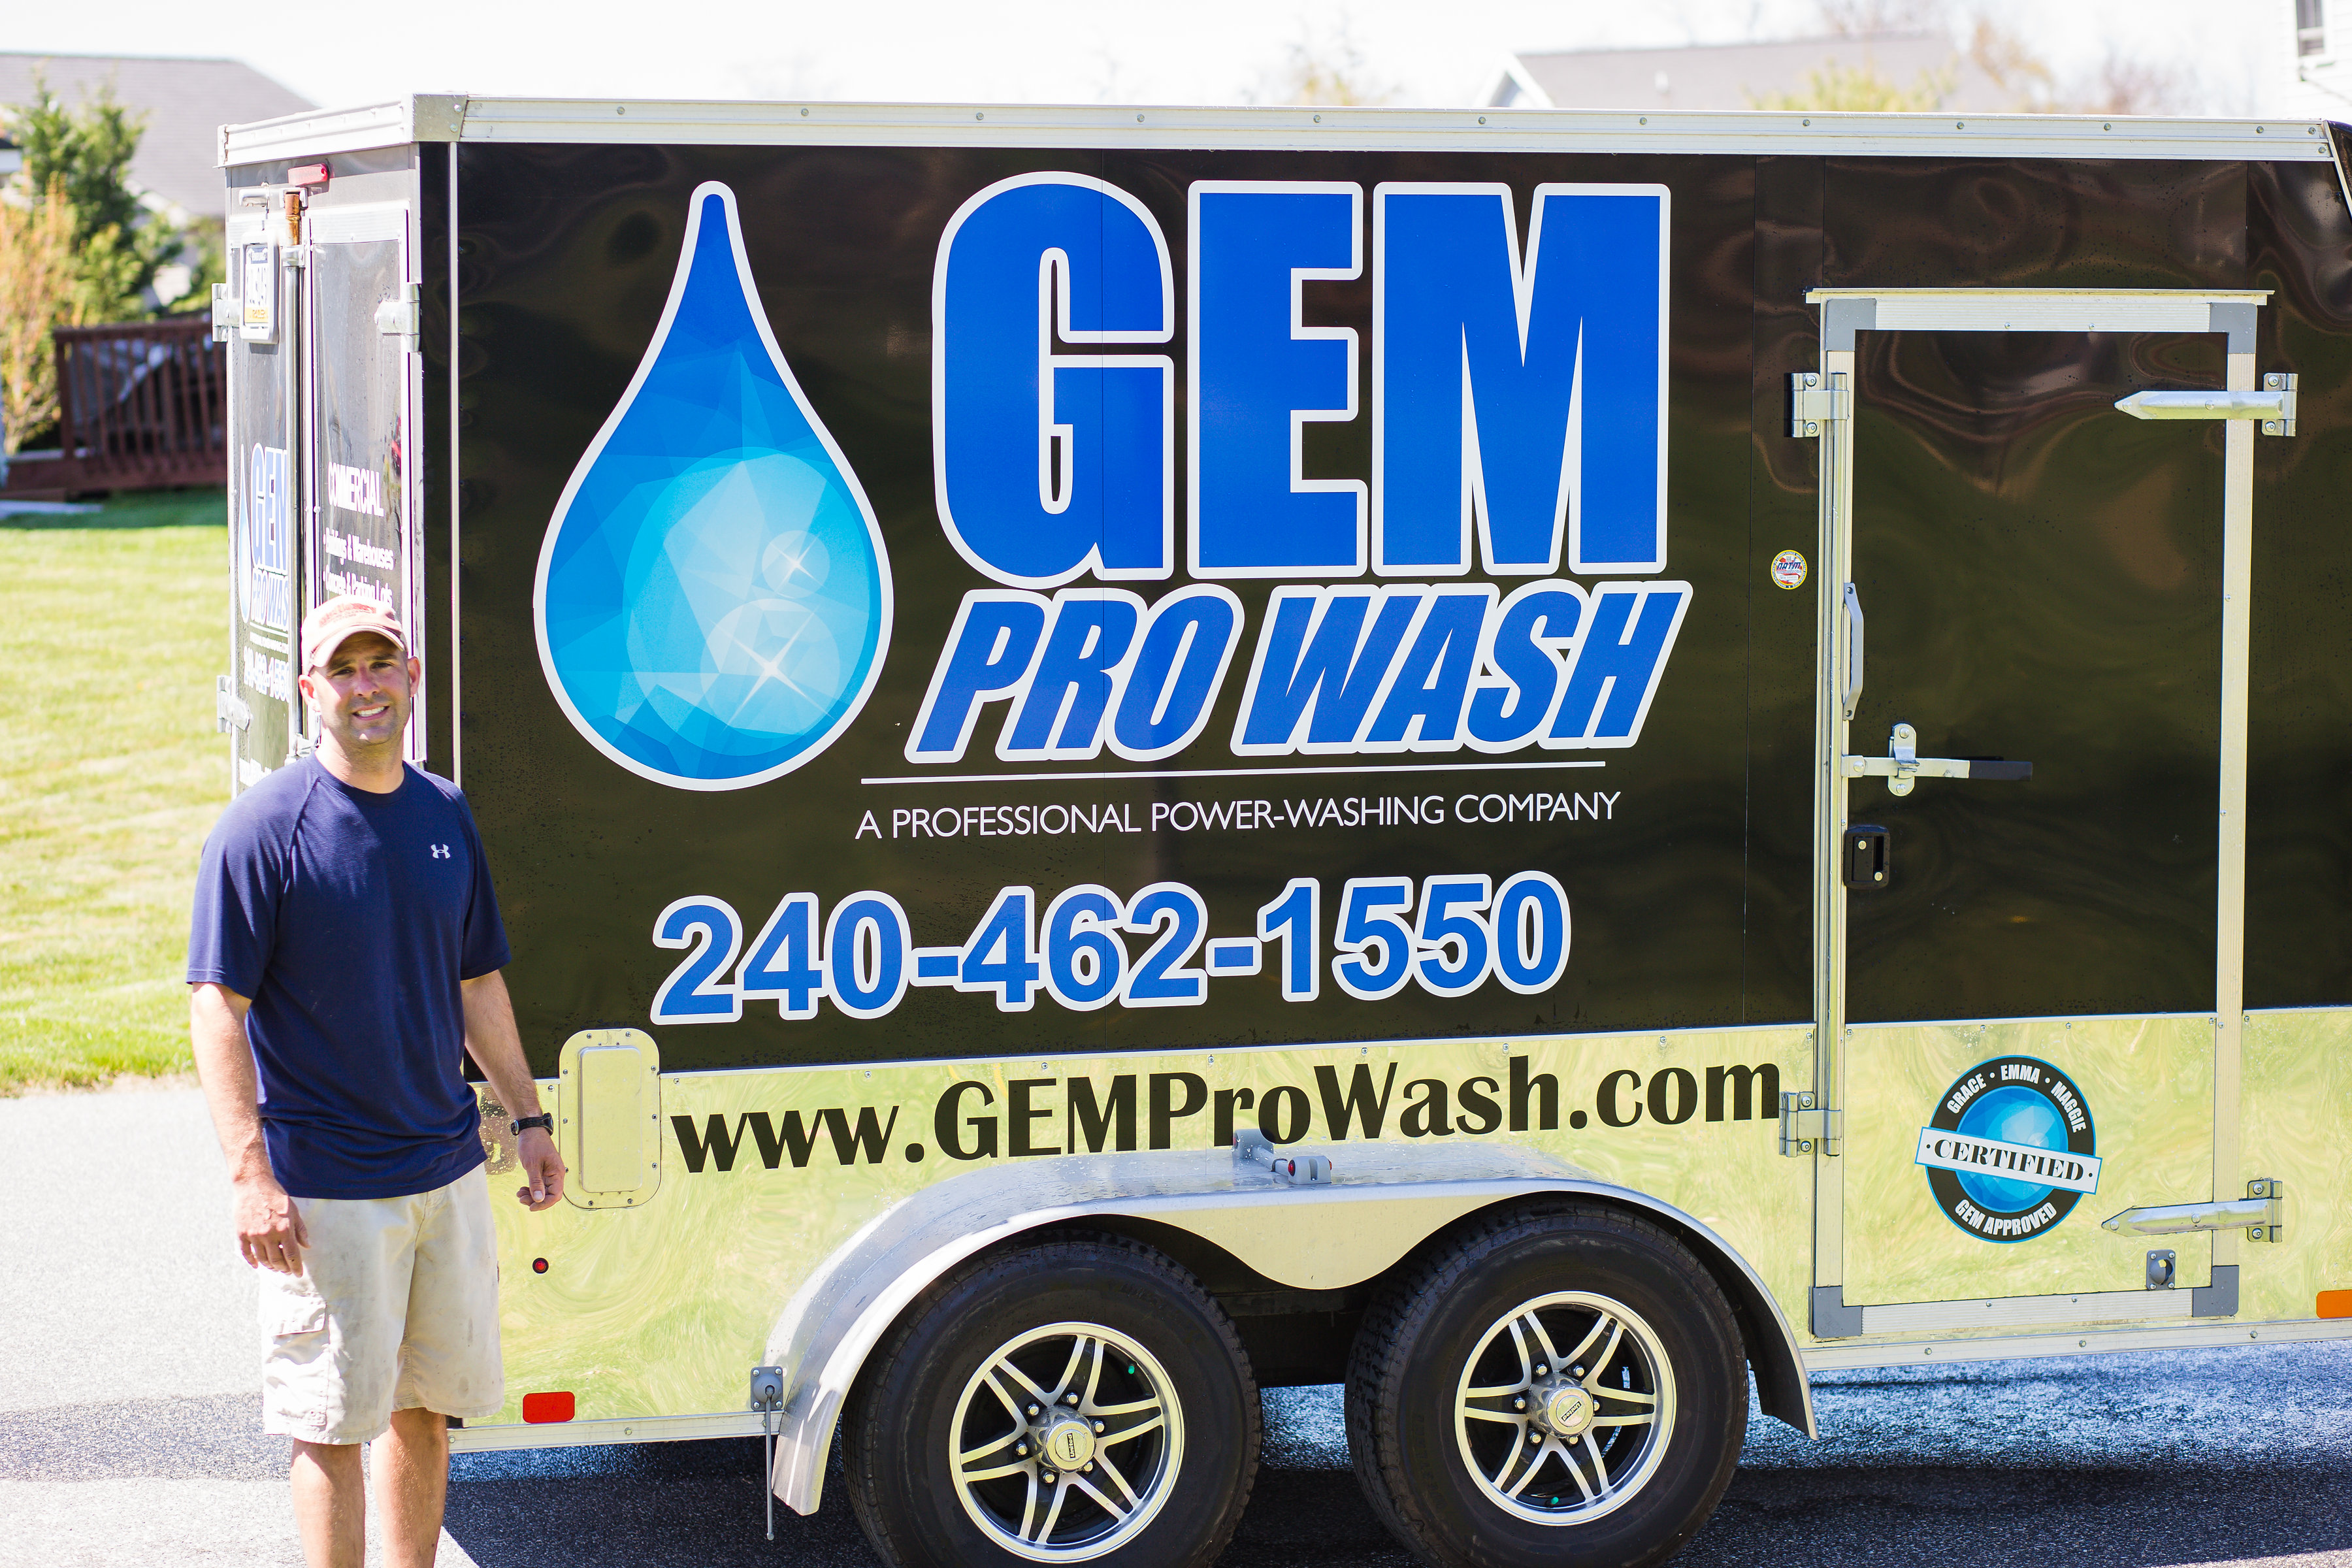 Gem Pro Wash | Power Washing Service in Martinsburg WV